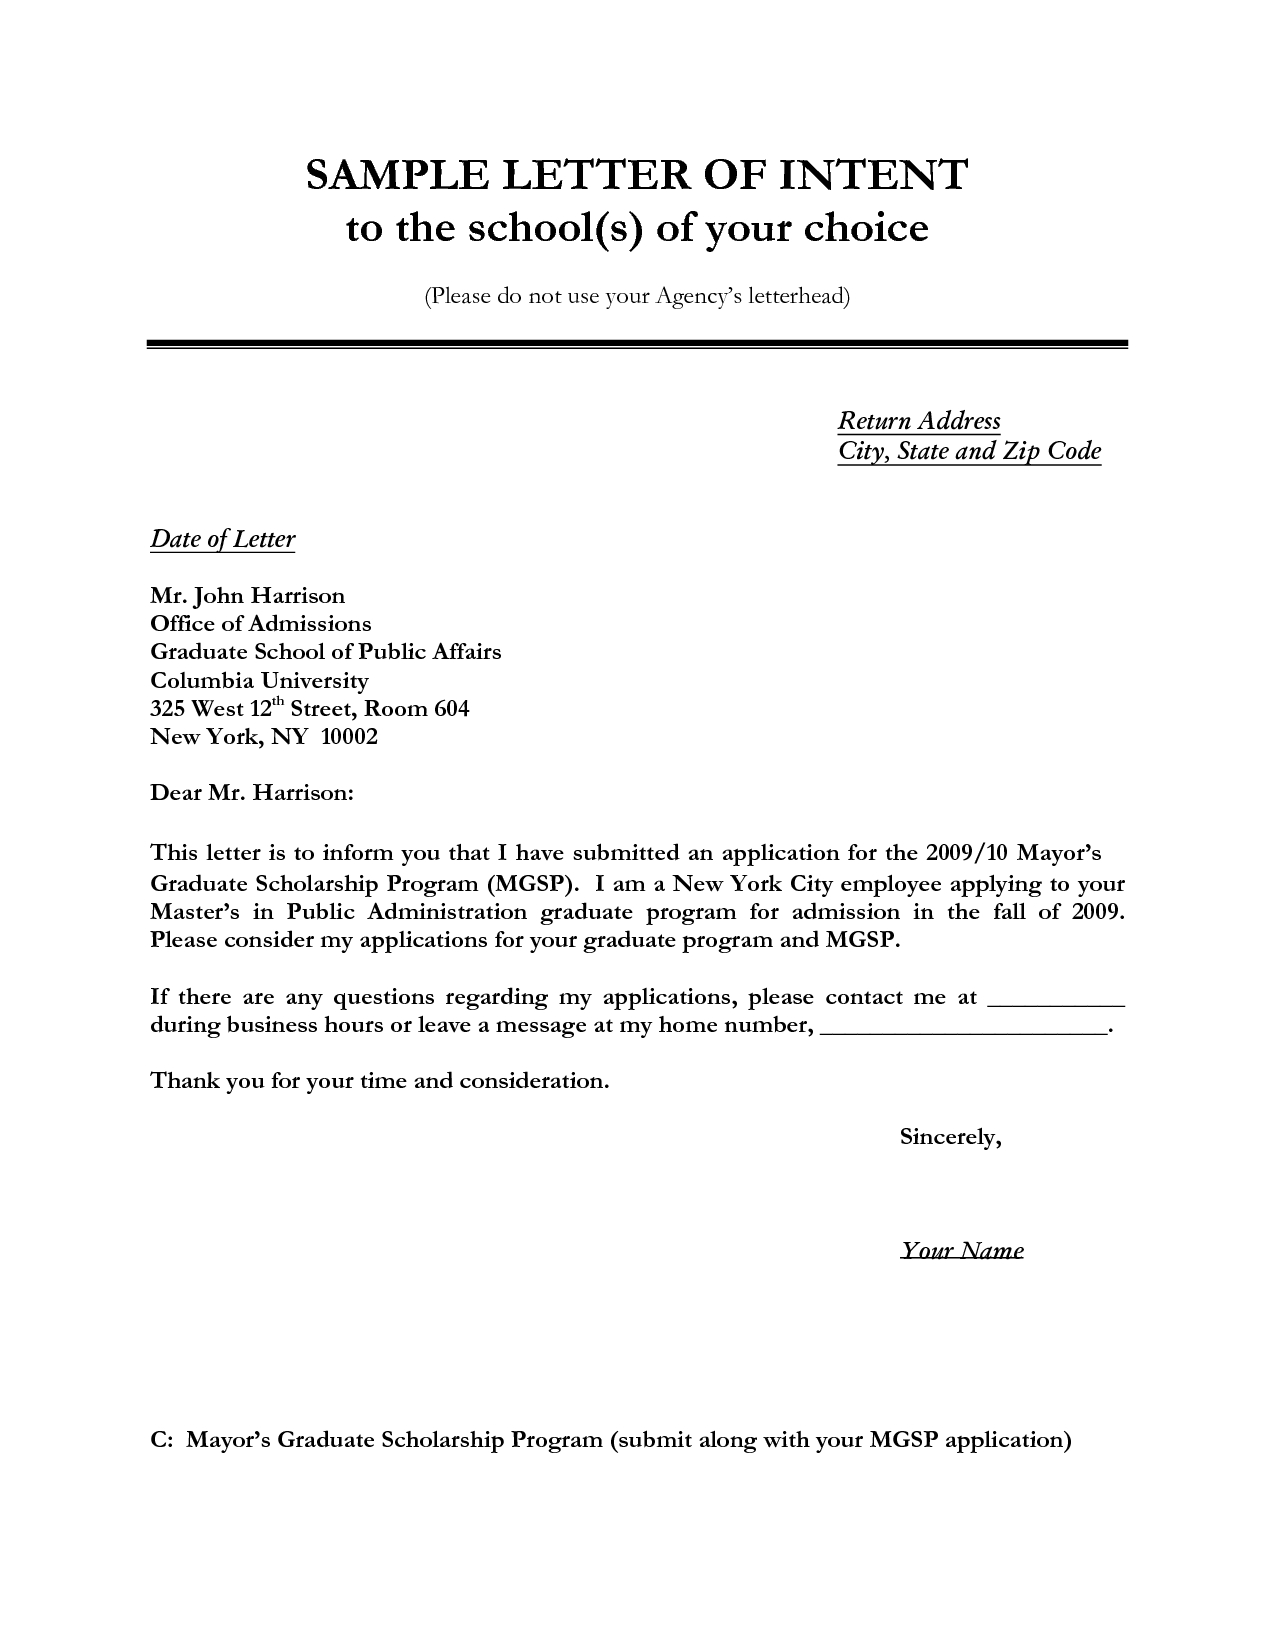 Commercial Real Estate Lease Letter Of Intent Template - Letter Of Intent Sample